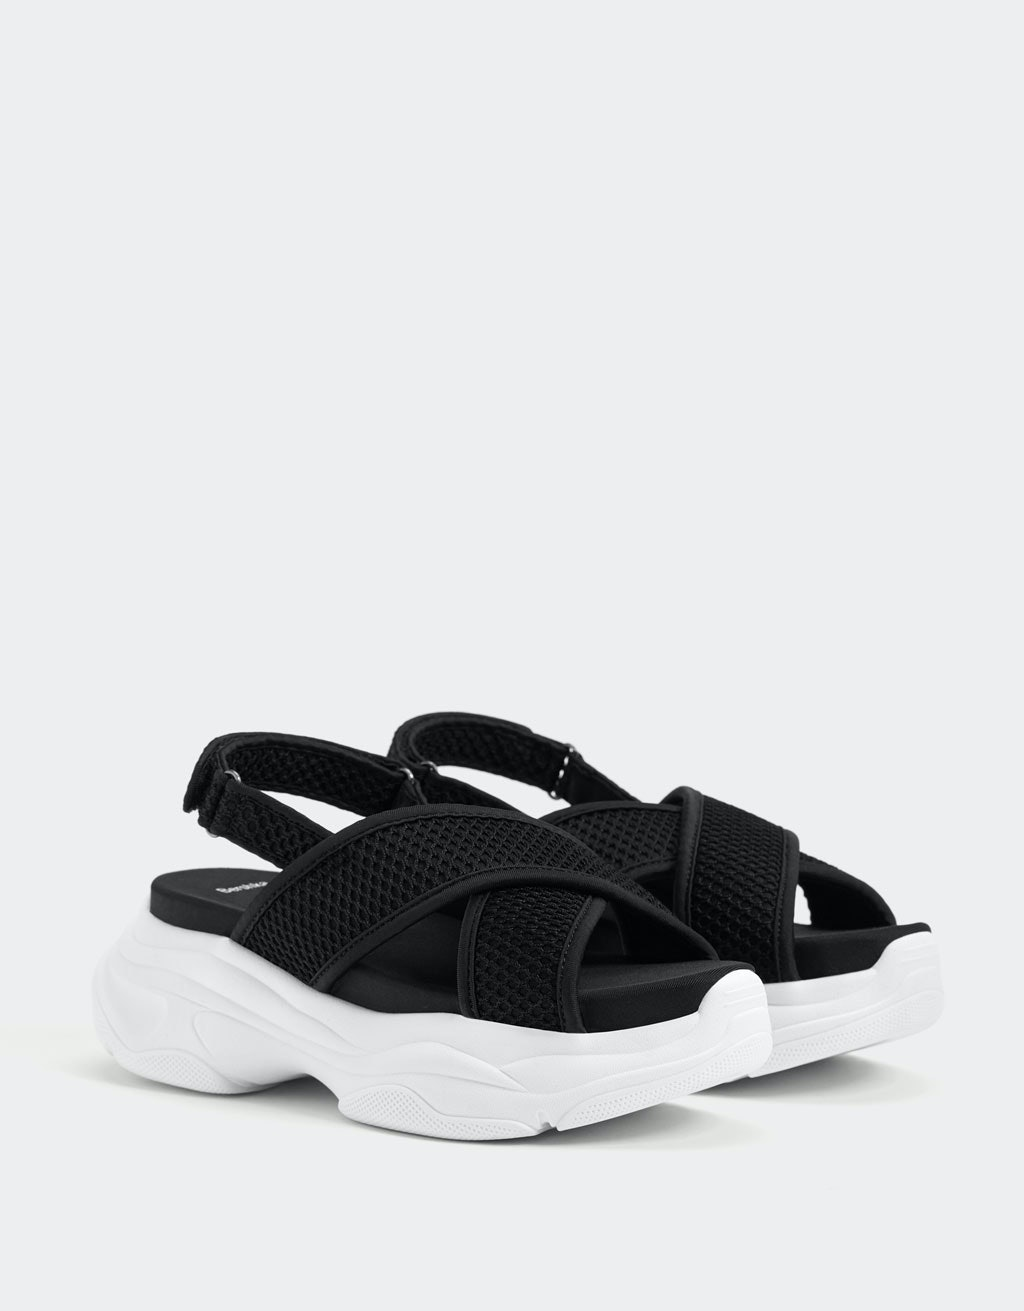 The Sport Sandal Trend Is Making